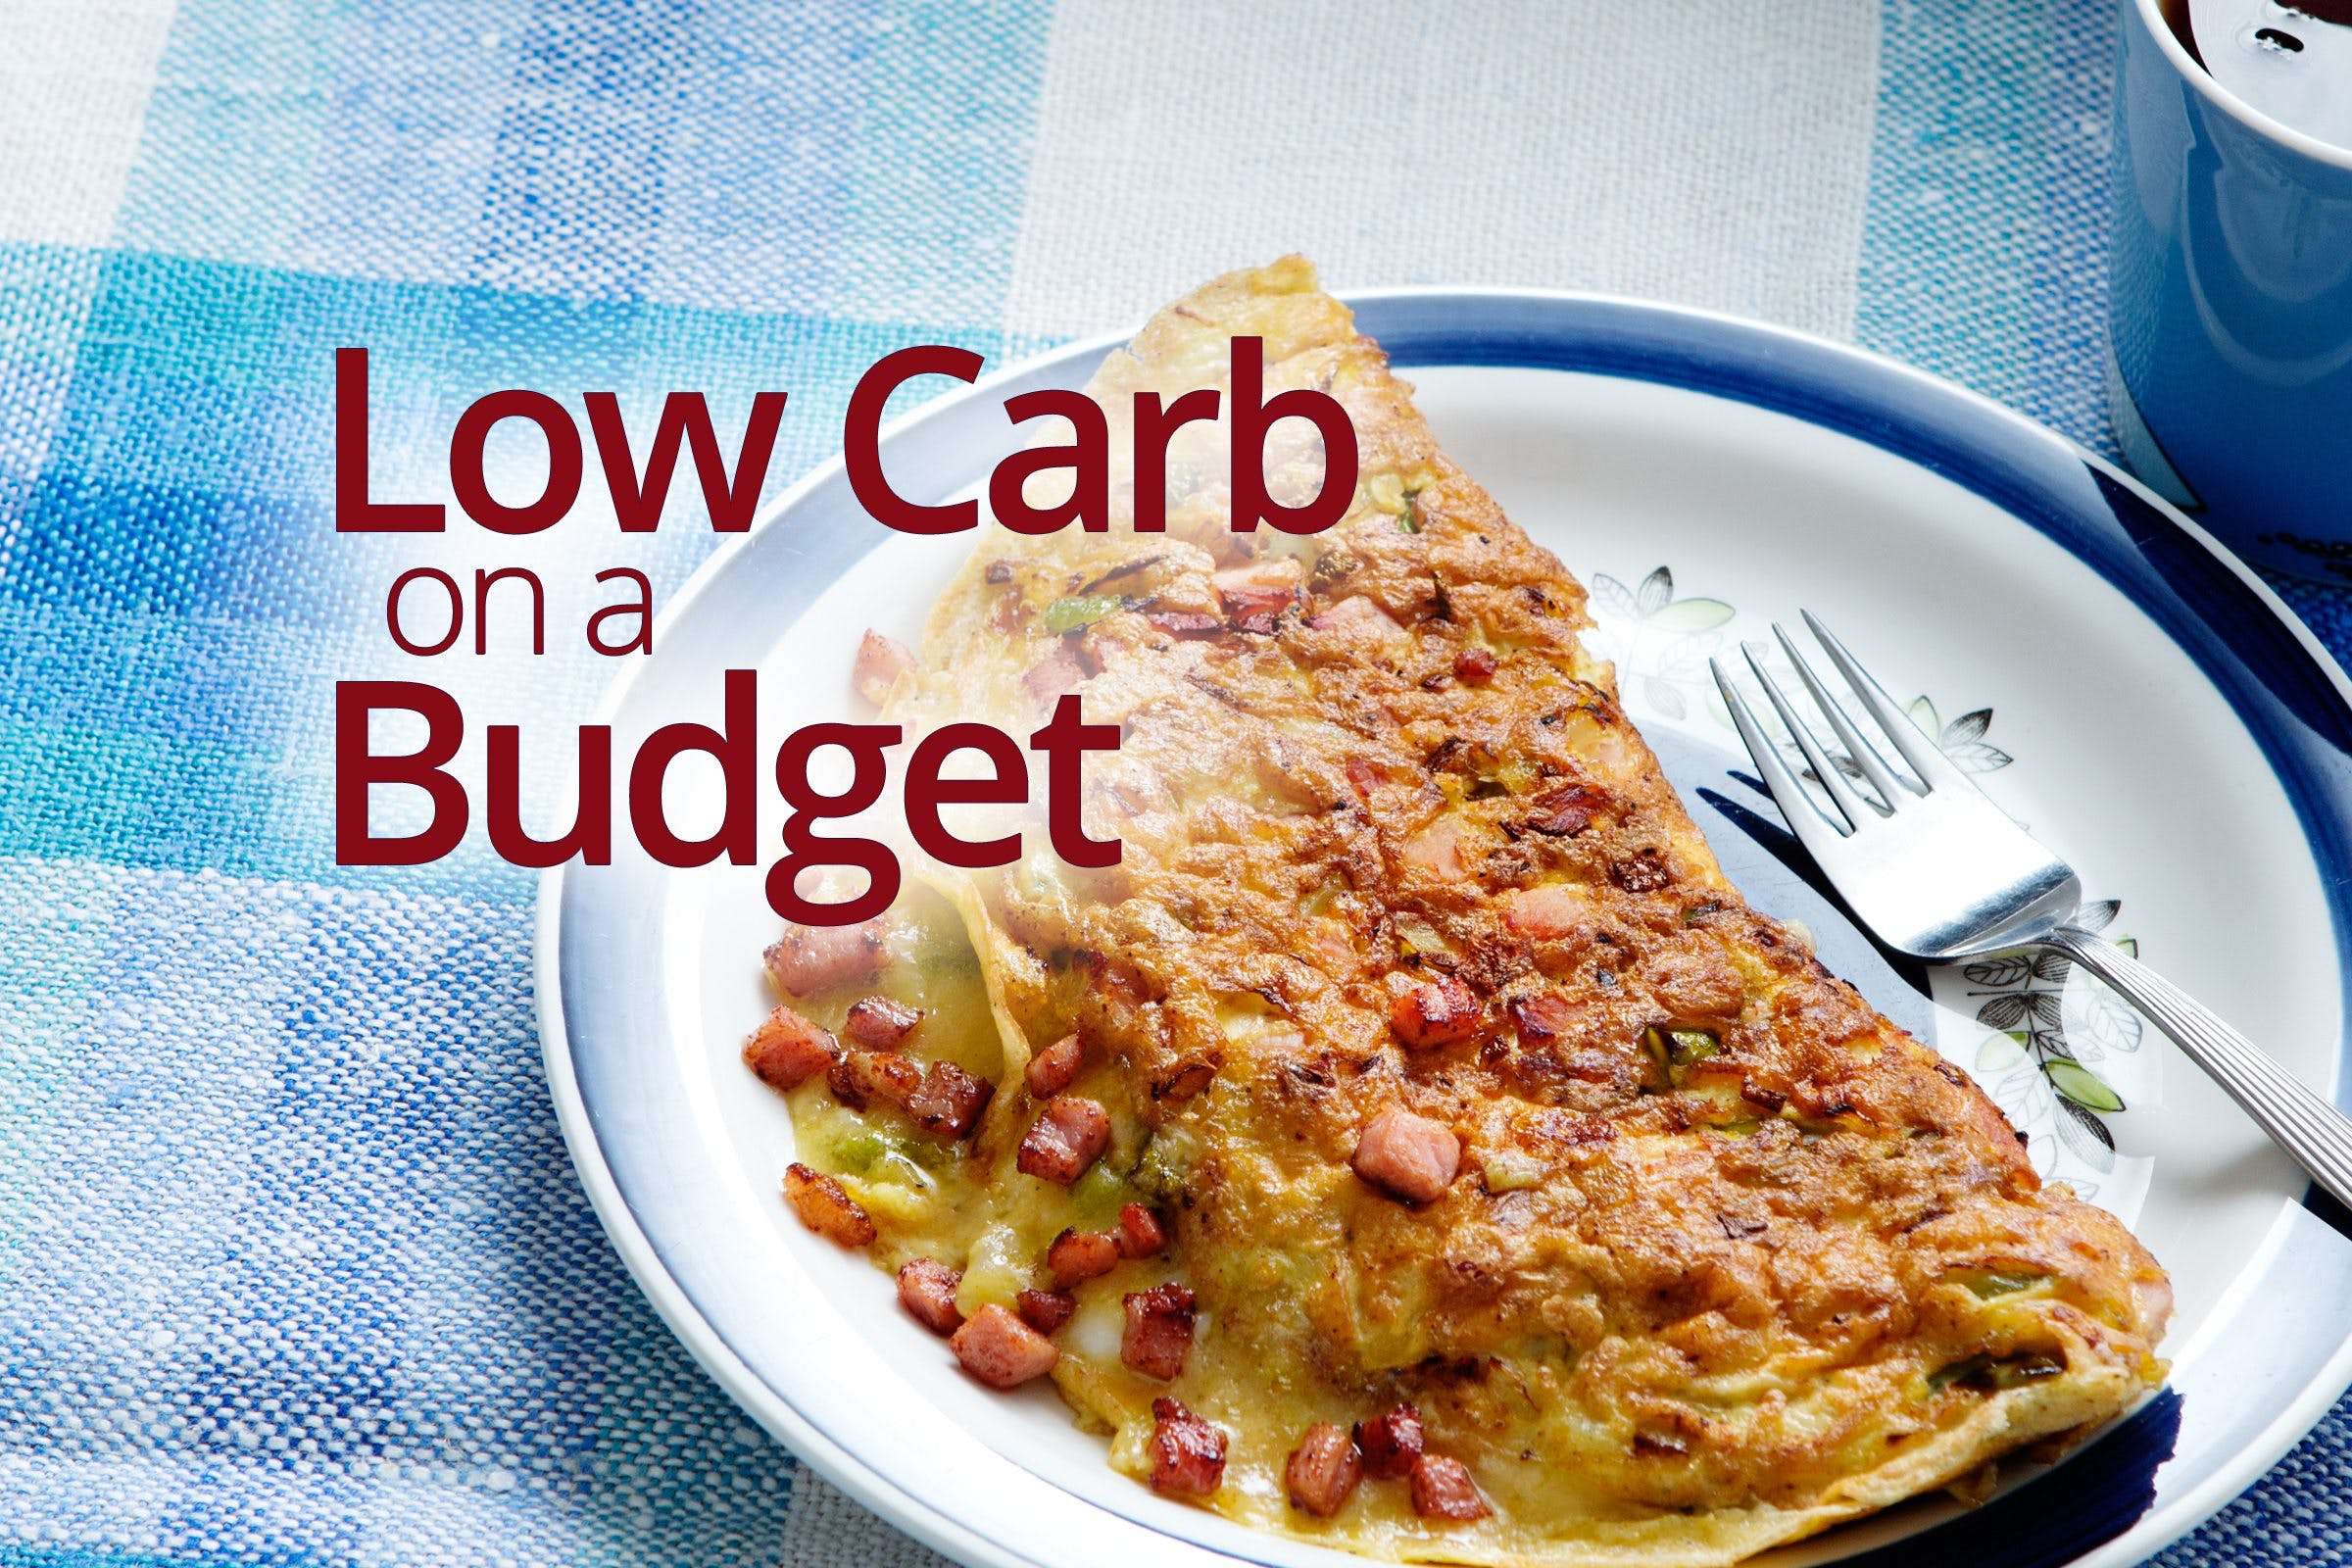 Low Carb on a Budget